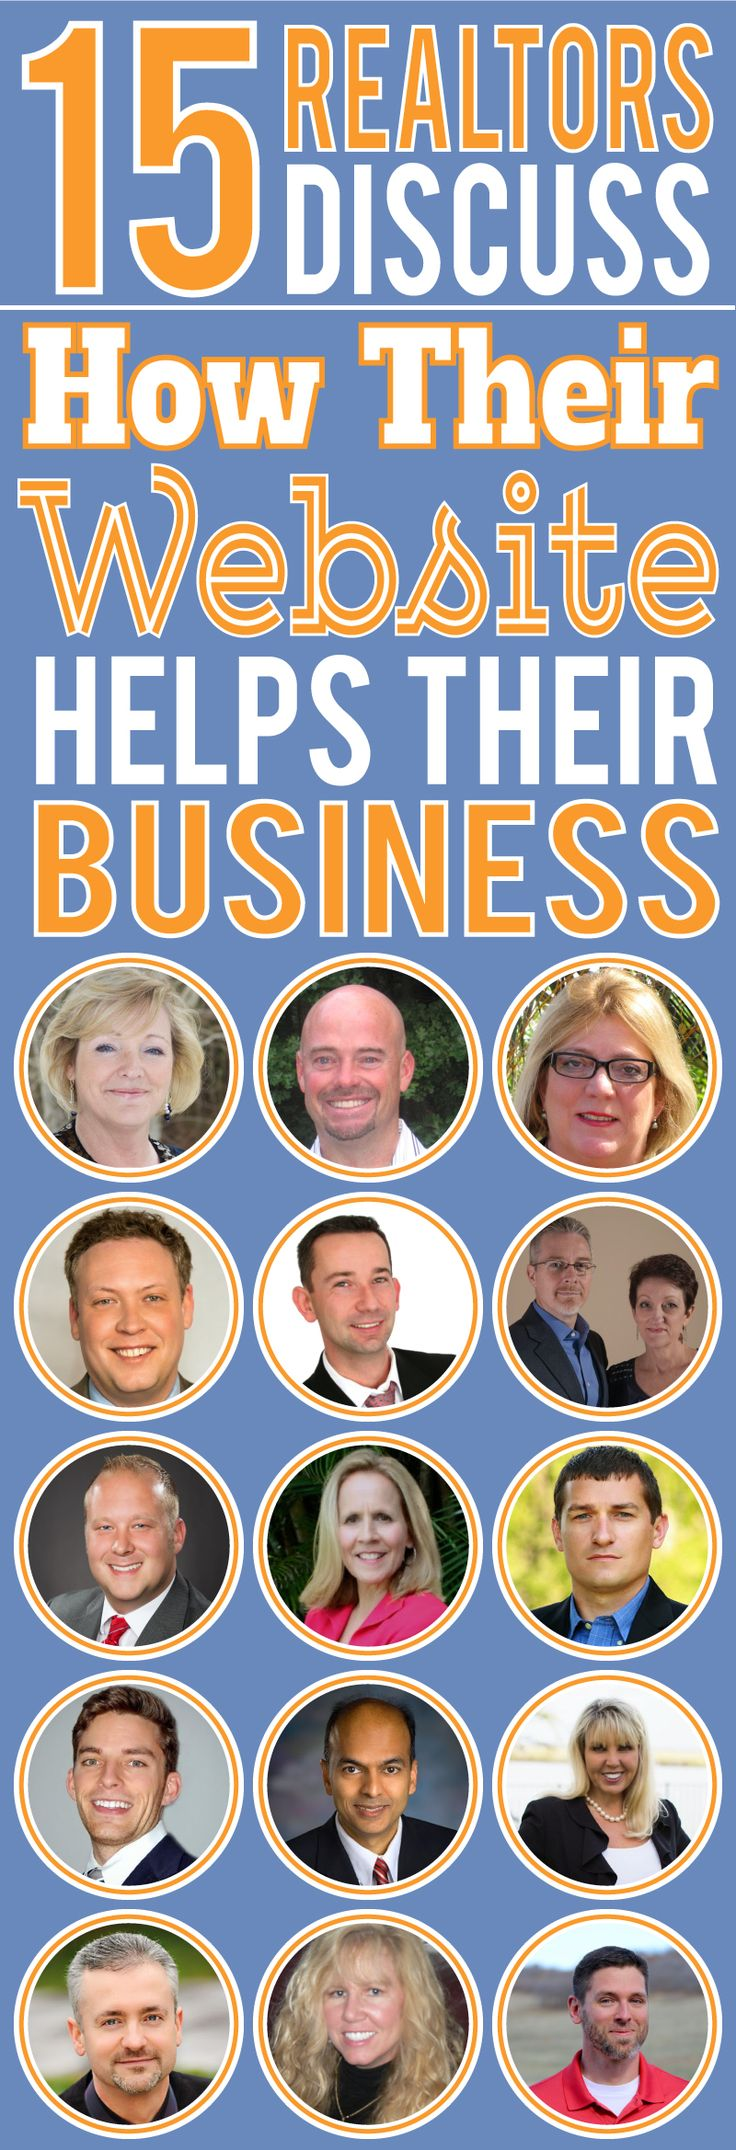 15 Realtors Discuss How Their Website Helps Their Business http://www.greatcoloradohomes.com/blog/15-realtors-discuss-how-their-real-estate-website-helps-their-business.html  #realestate